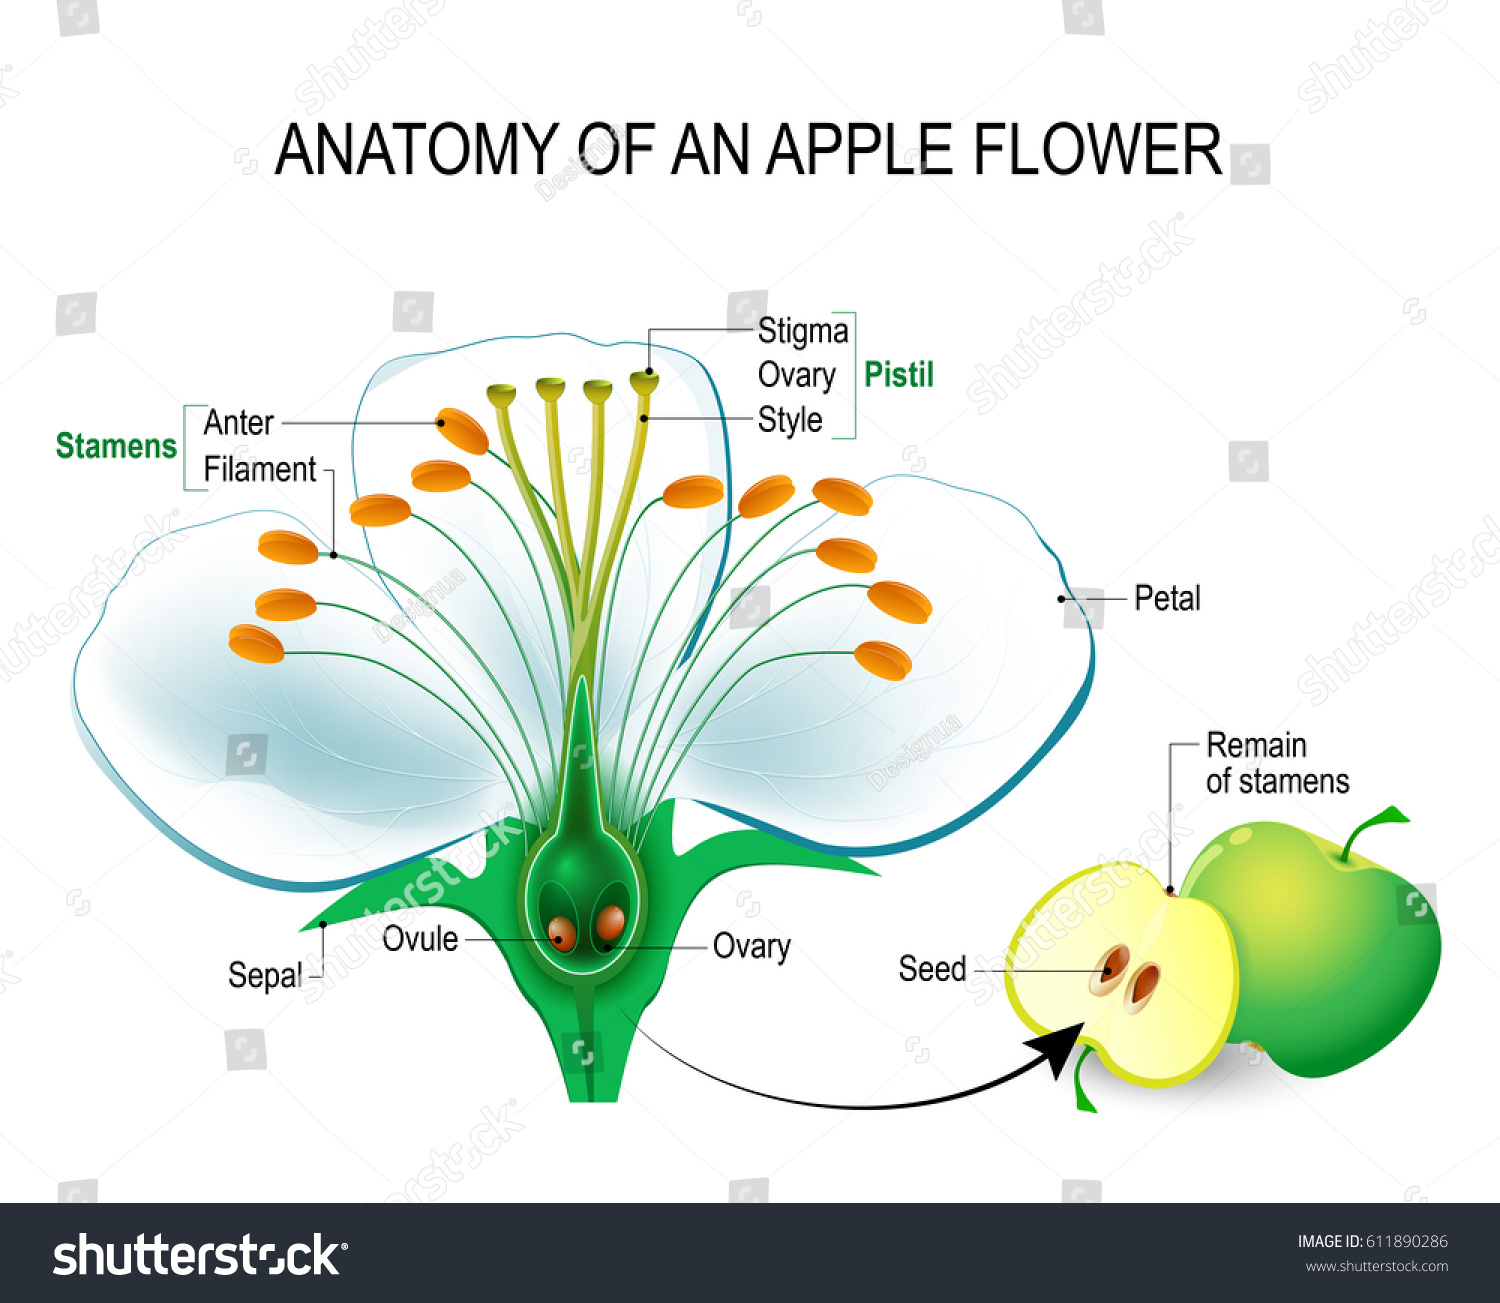 hight resolution of anatomy of an apple flower flower parts detailed diagram with cross section useful